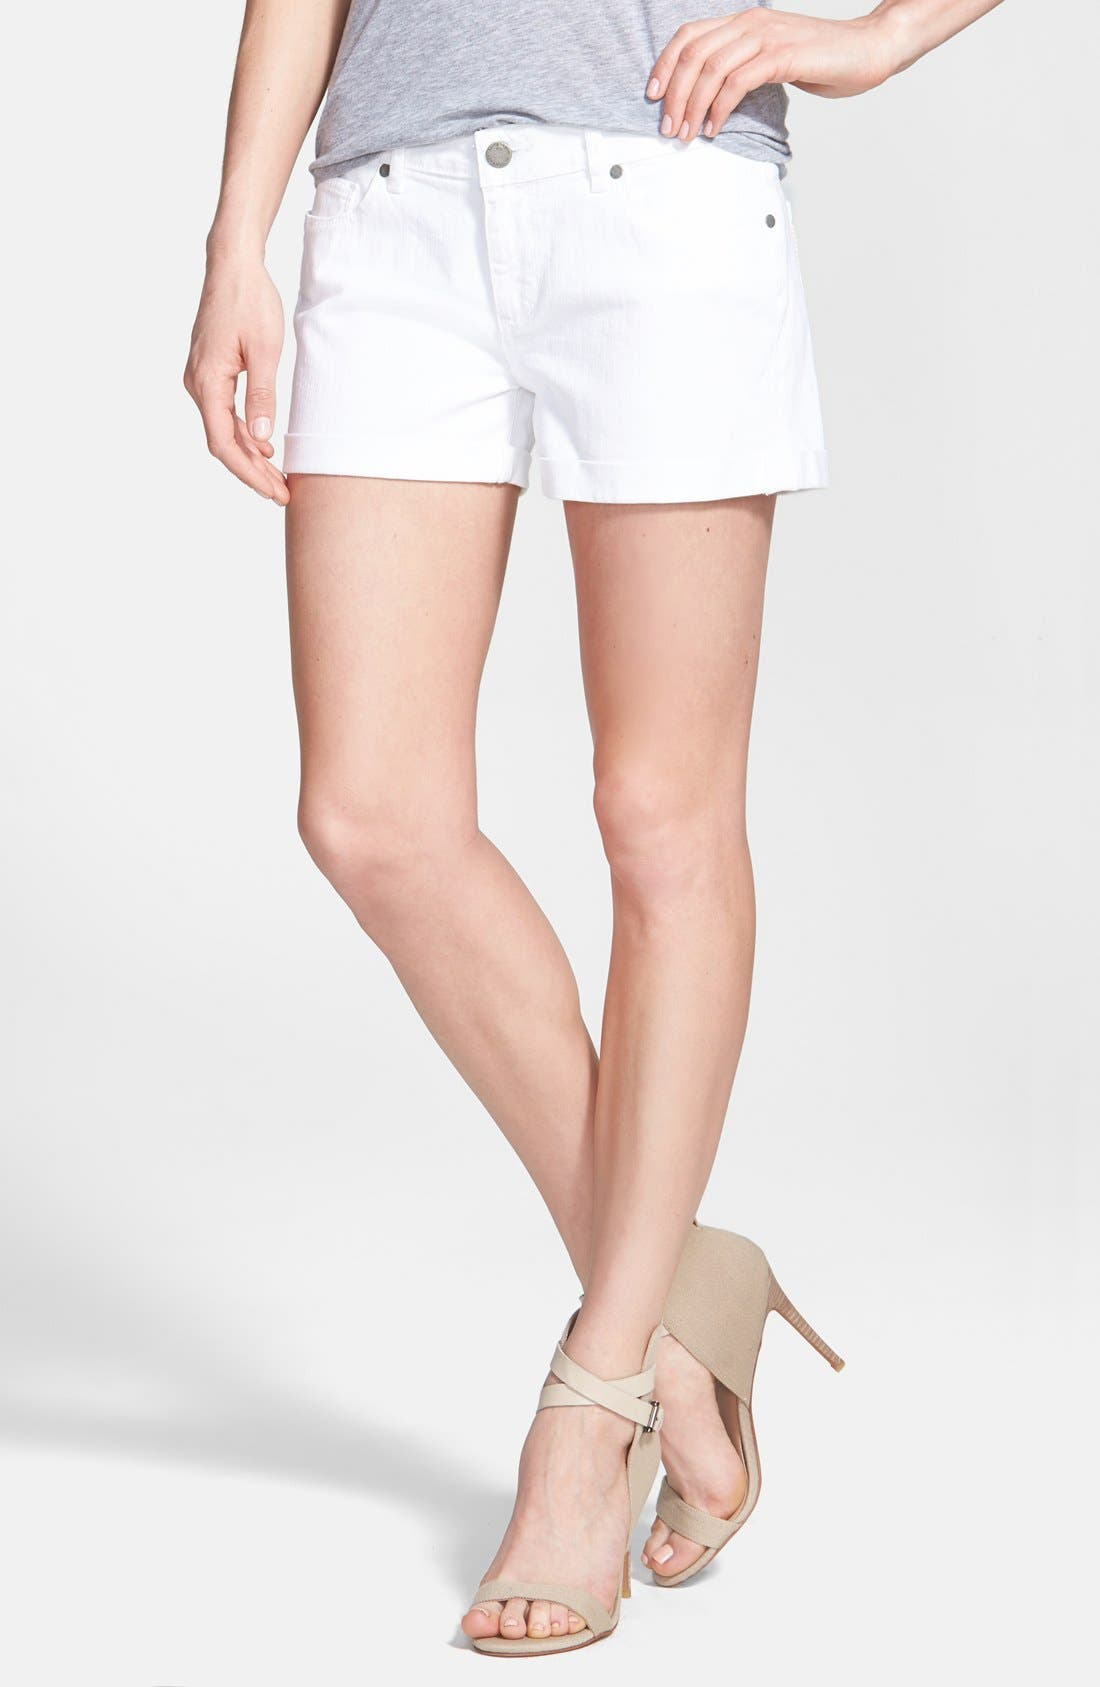 Paige Denim 'Jimmy Jimmy' Cuff Denim Shorts (Optic White)